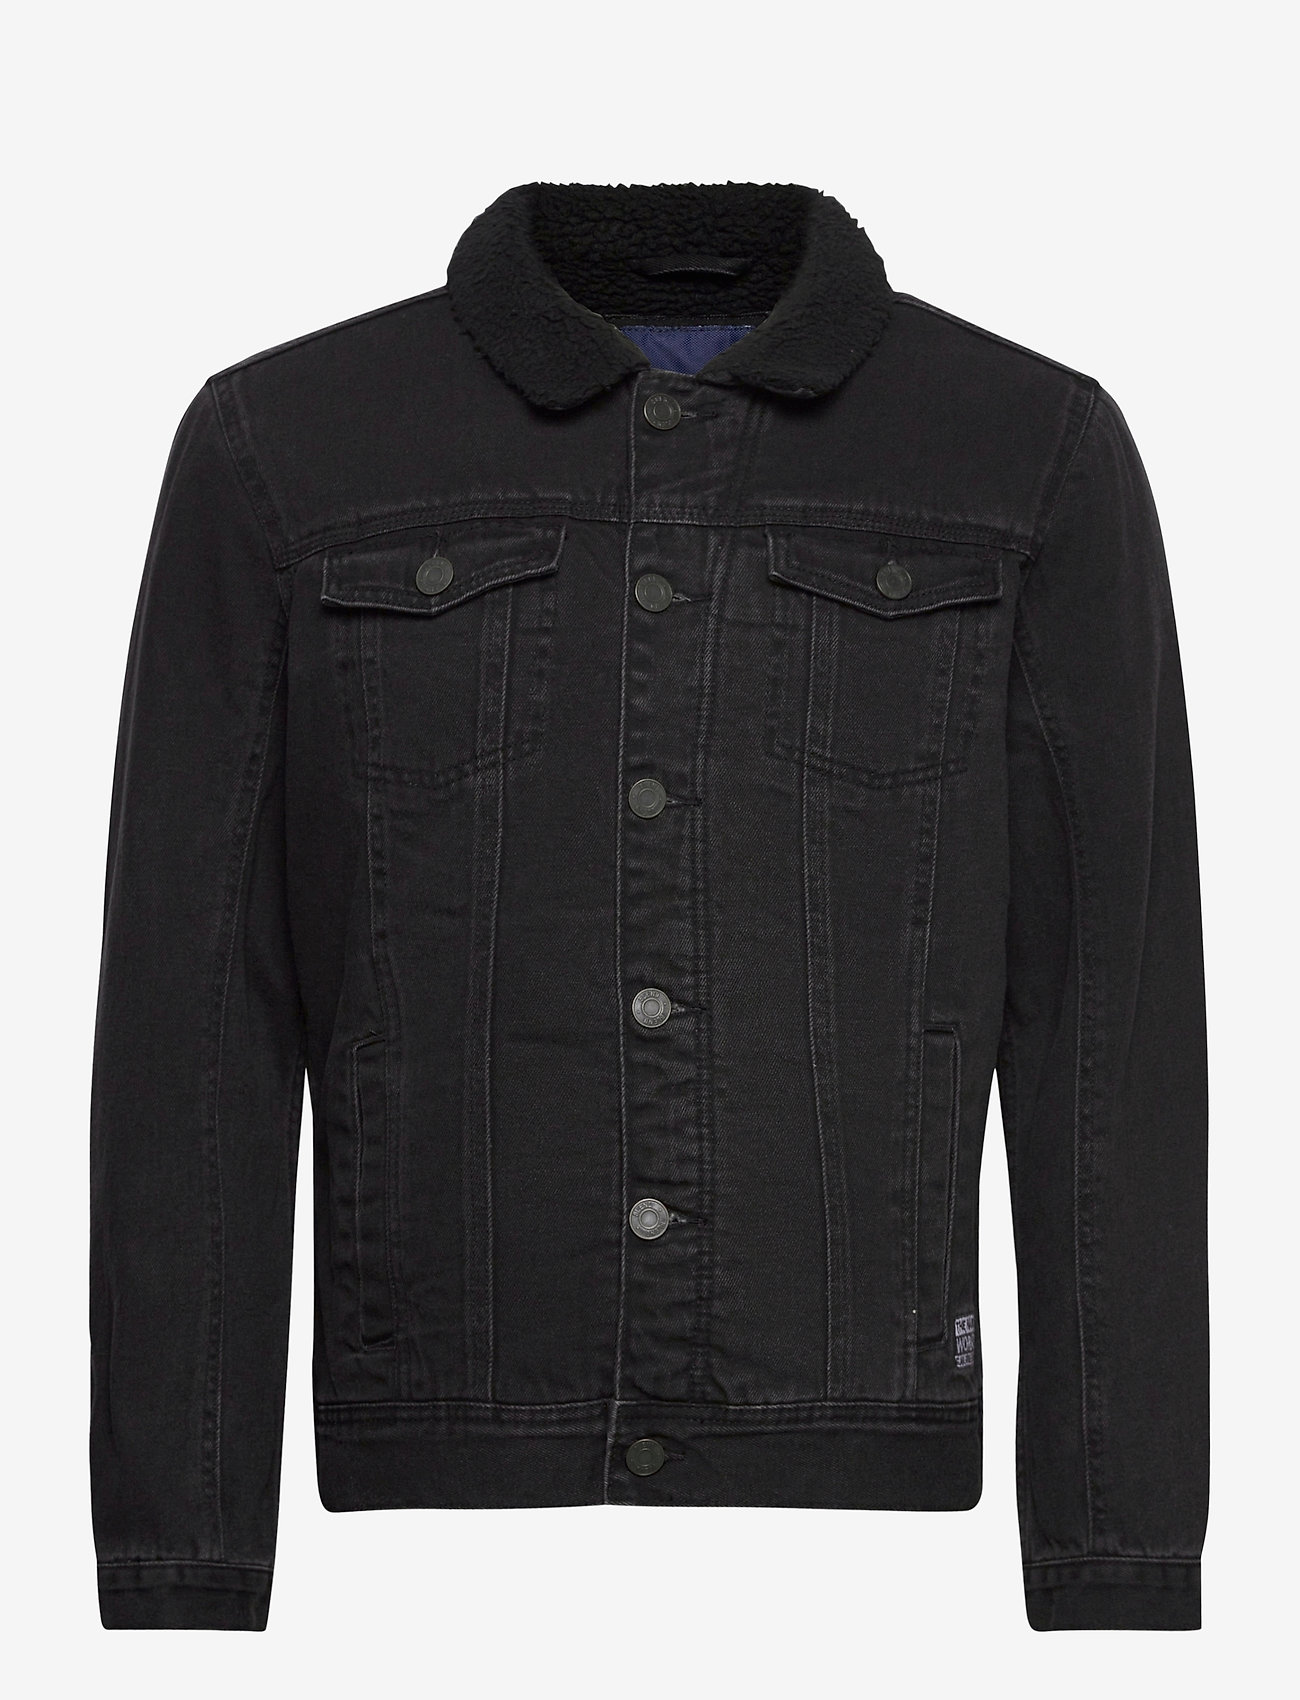 Blend - Outerwear - denim jackets - denim black - 0